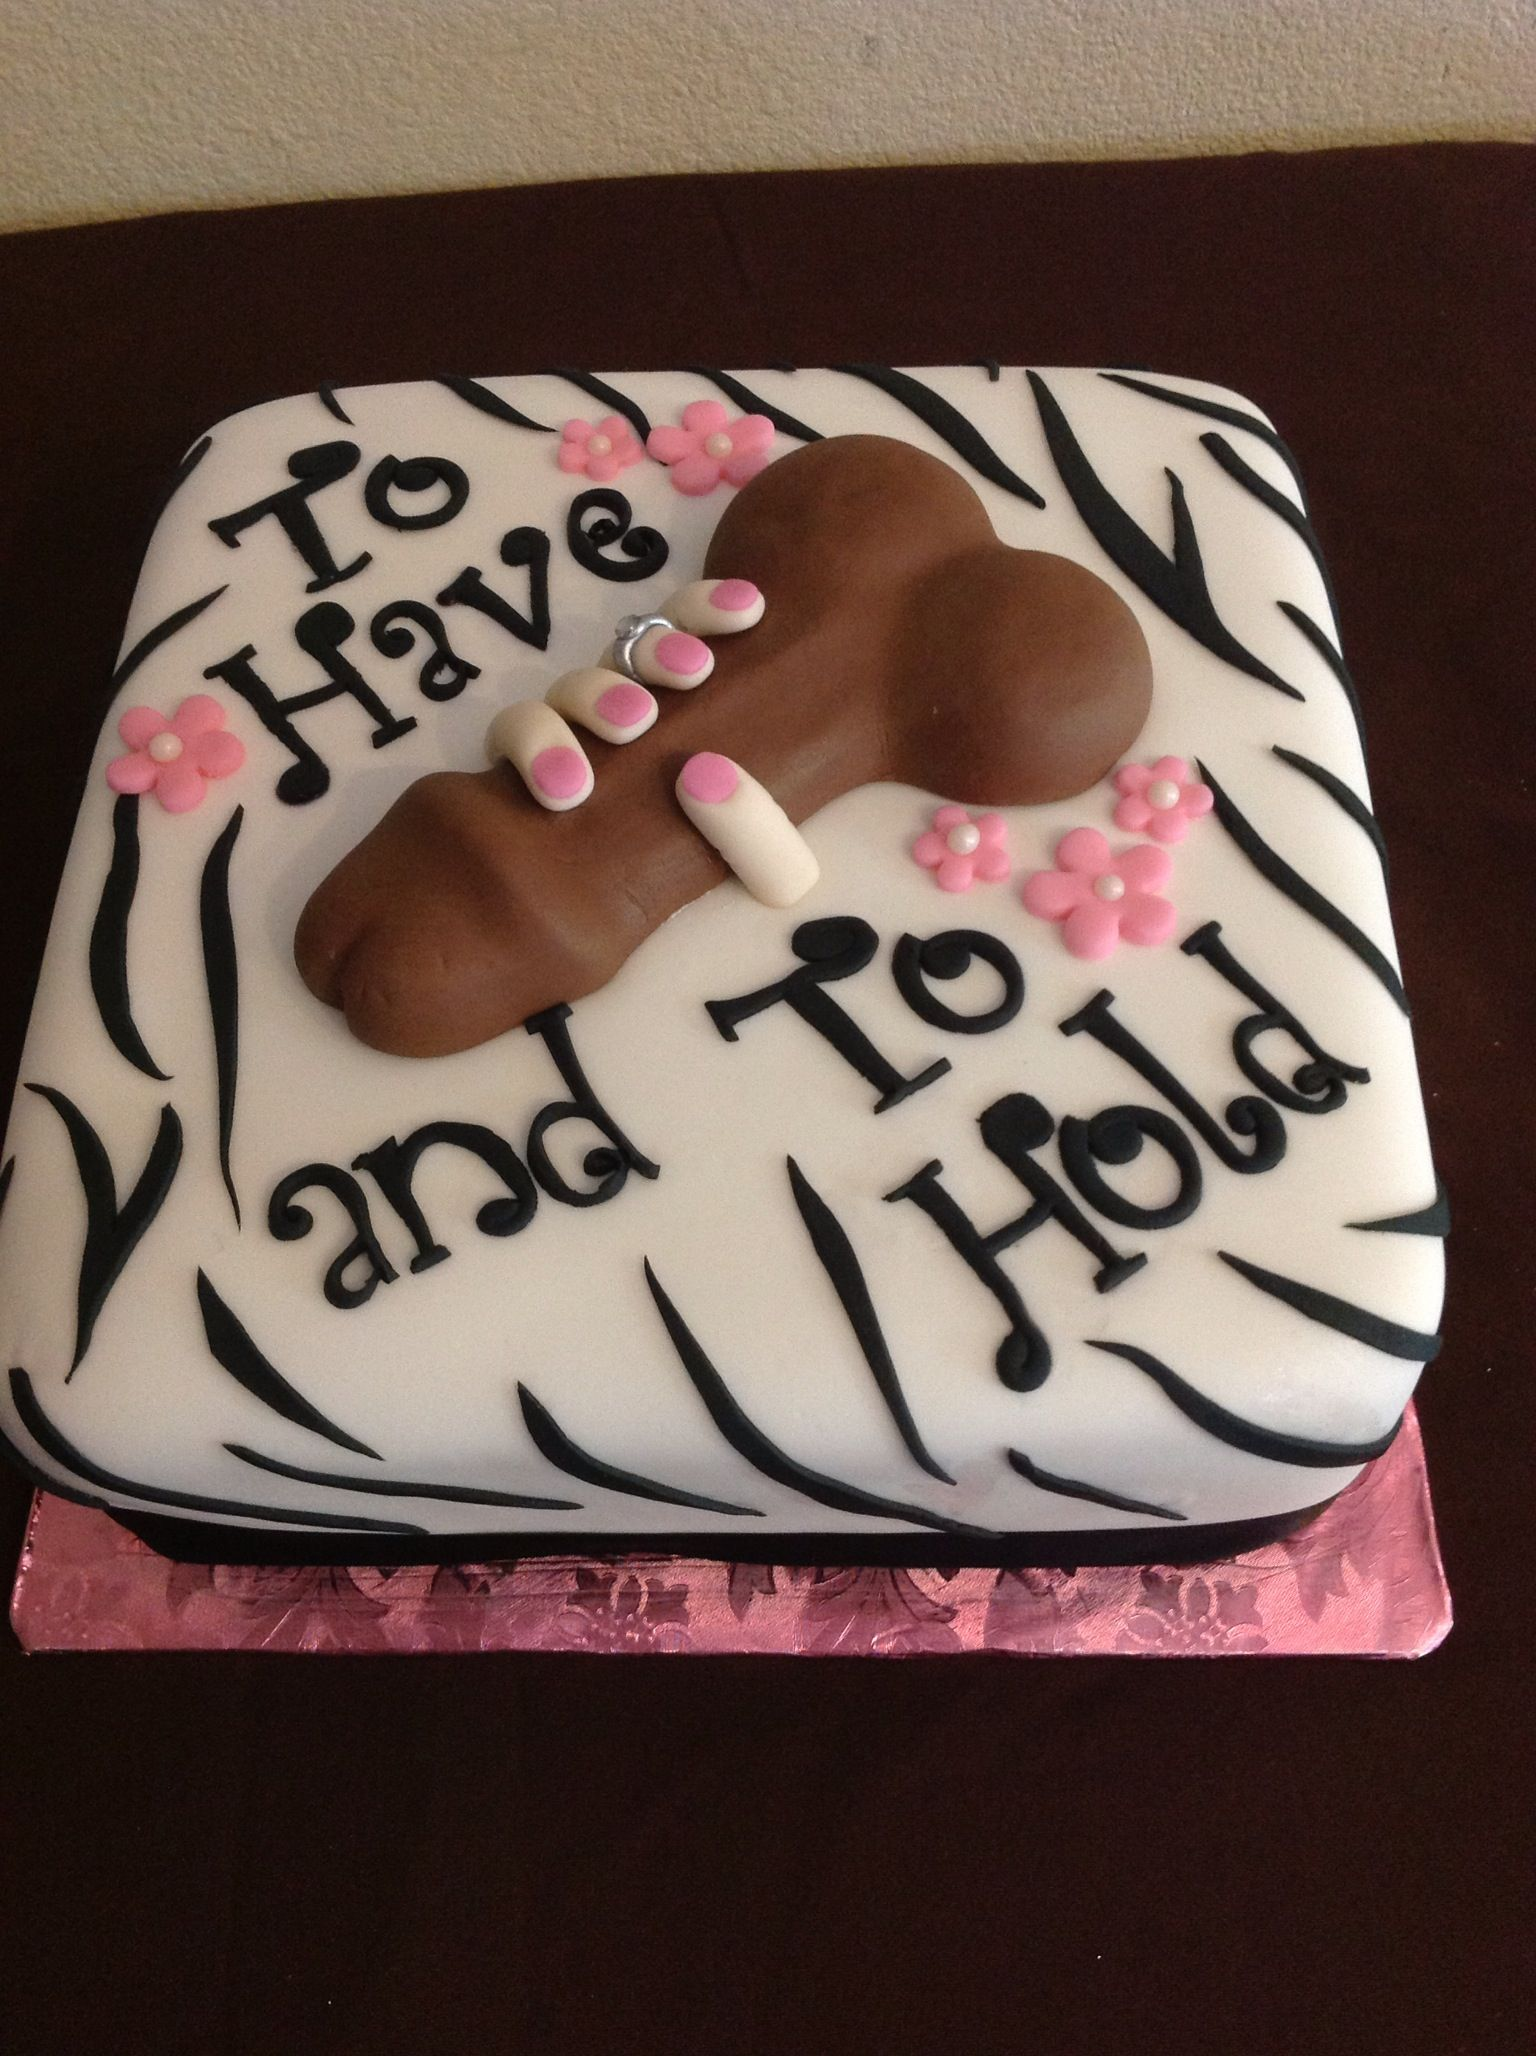 cake pop ideas wedding shower%0A Bridal shower Cake I wouldnt have this but have to post for fun